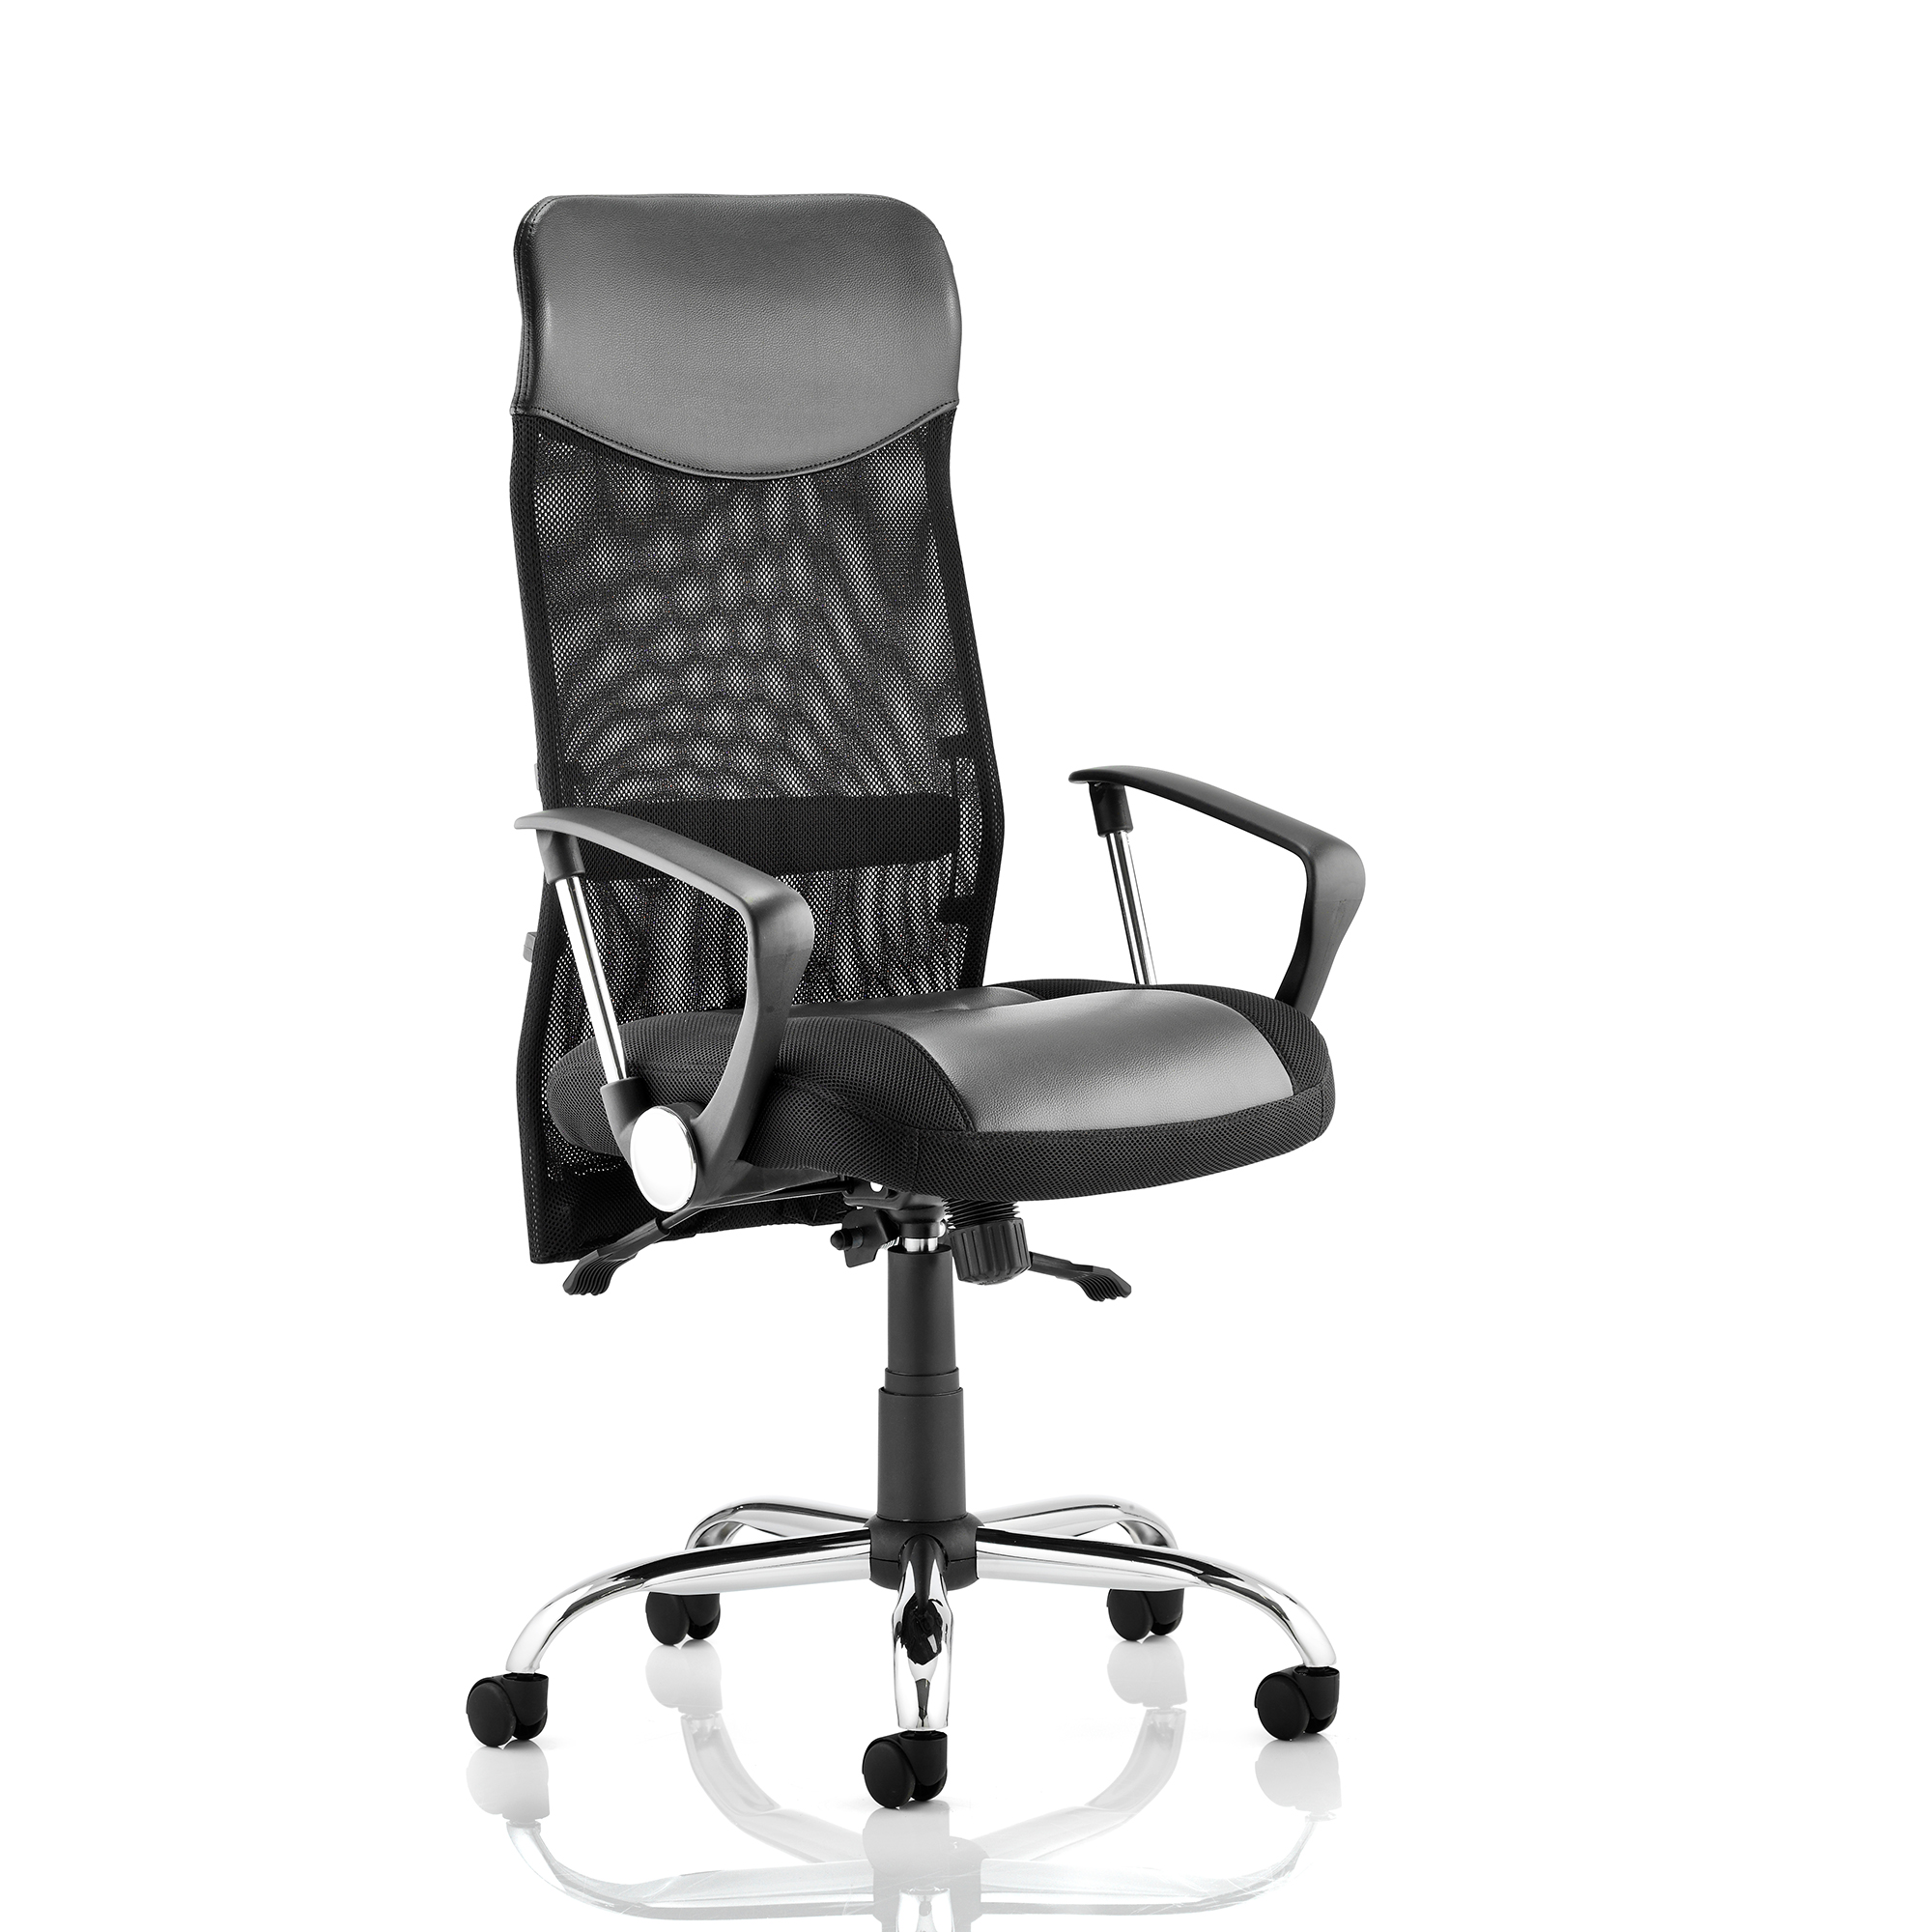 Executive seating Trexus Vegas Executive Chair With Arms Leather Headrest Leather Seat Mesh Back Black Ref EX000074